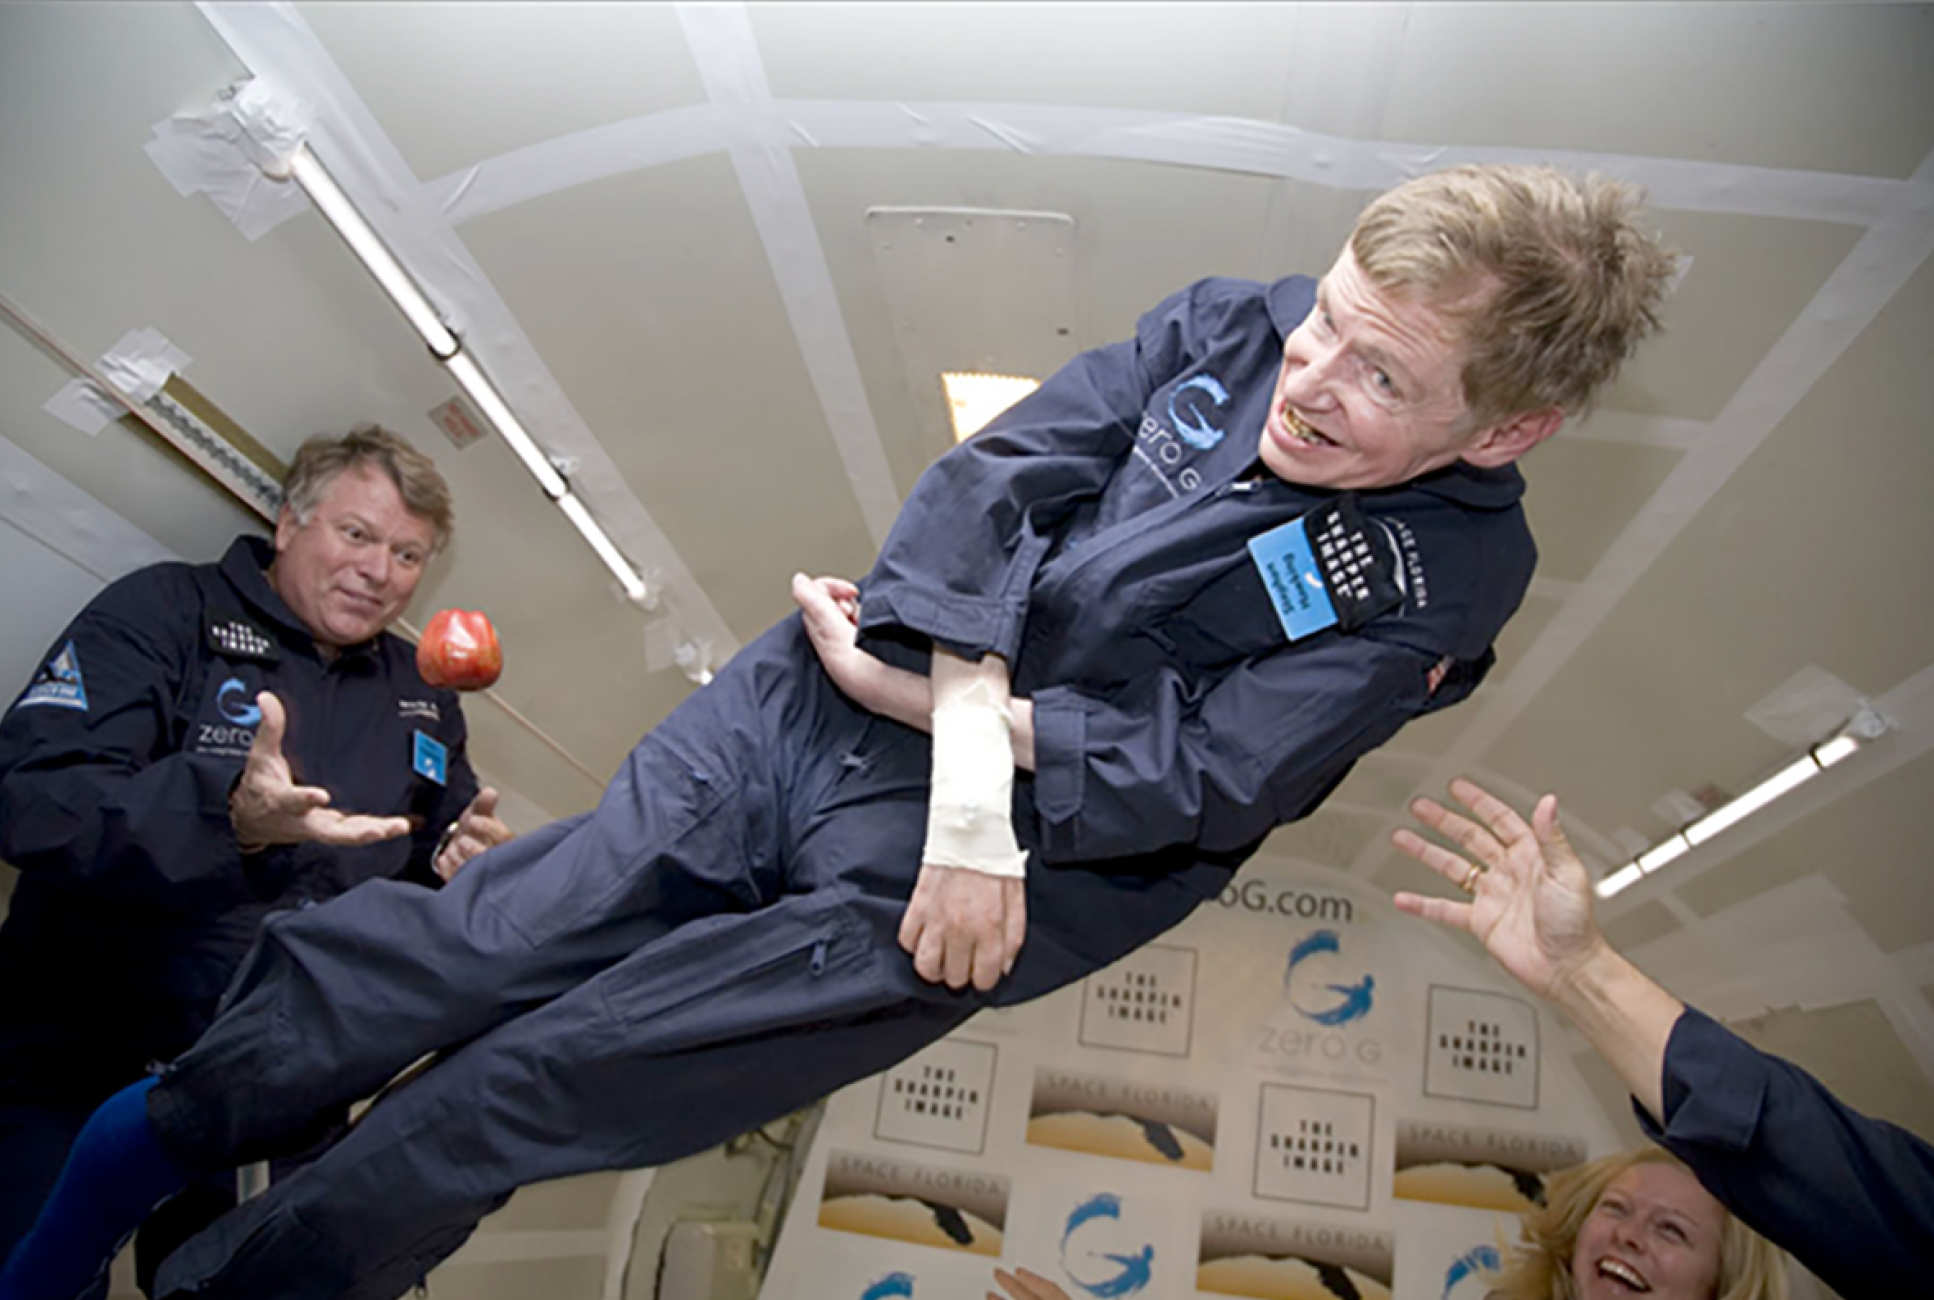 Professor Chilvers was also personal physician to renowned physicist Professor Stephen Hawking, traveling with him on his 2007 'zero gravity' flight.